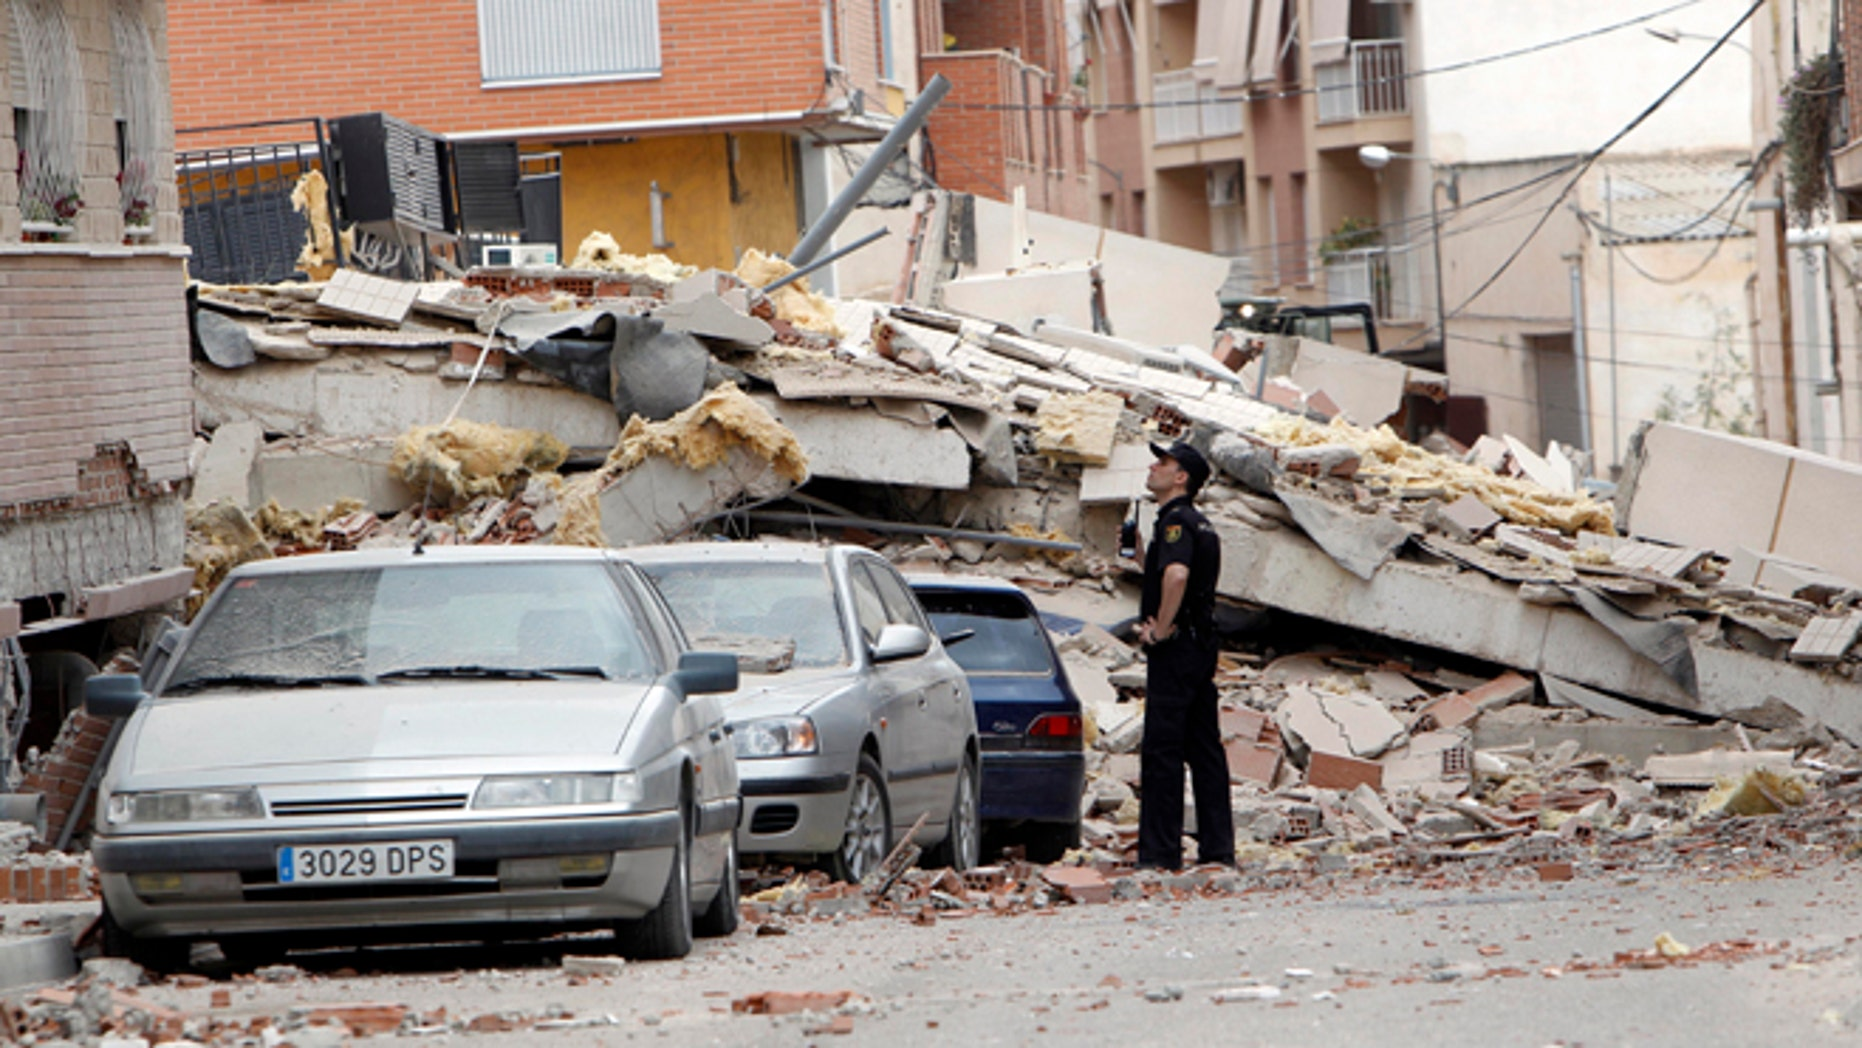 May 12, 2011: A police officer inspects damage caused by an earthquake the previous day in Lorca, Spain. Farmers drilling ever deeper wells over decades to water their crops likely contributed to the deadly earthquake in southern Spain last year, a new study suggests.